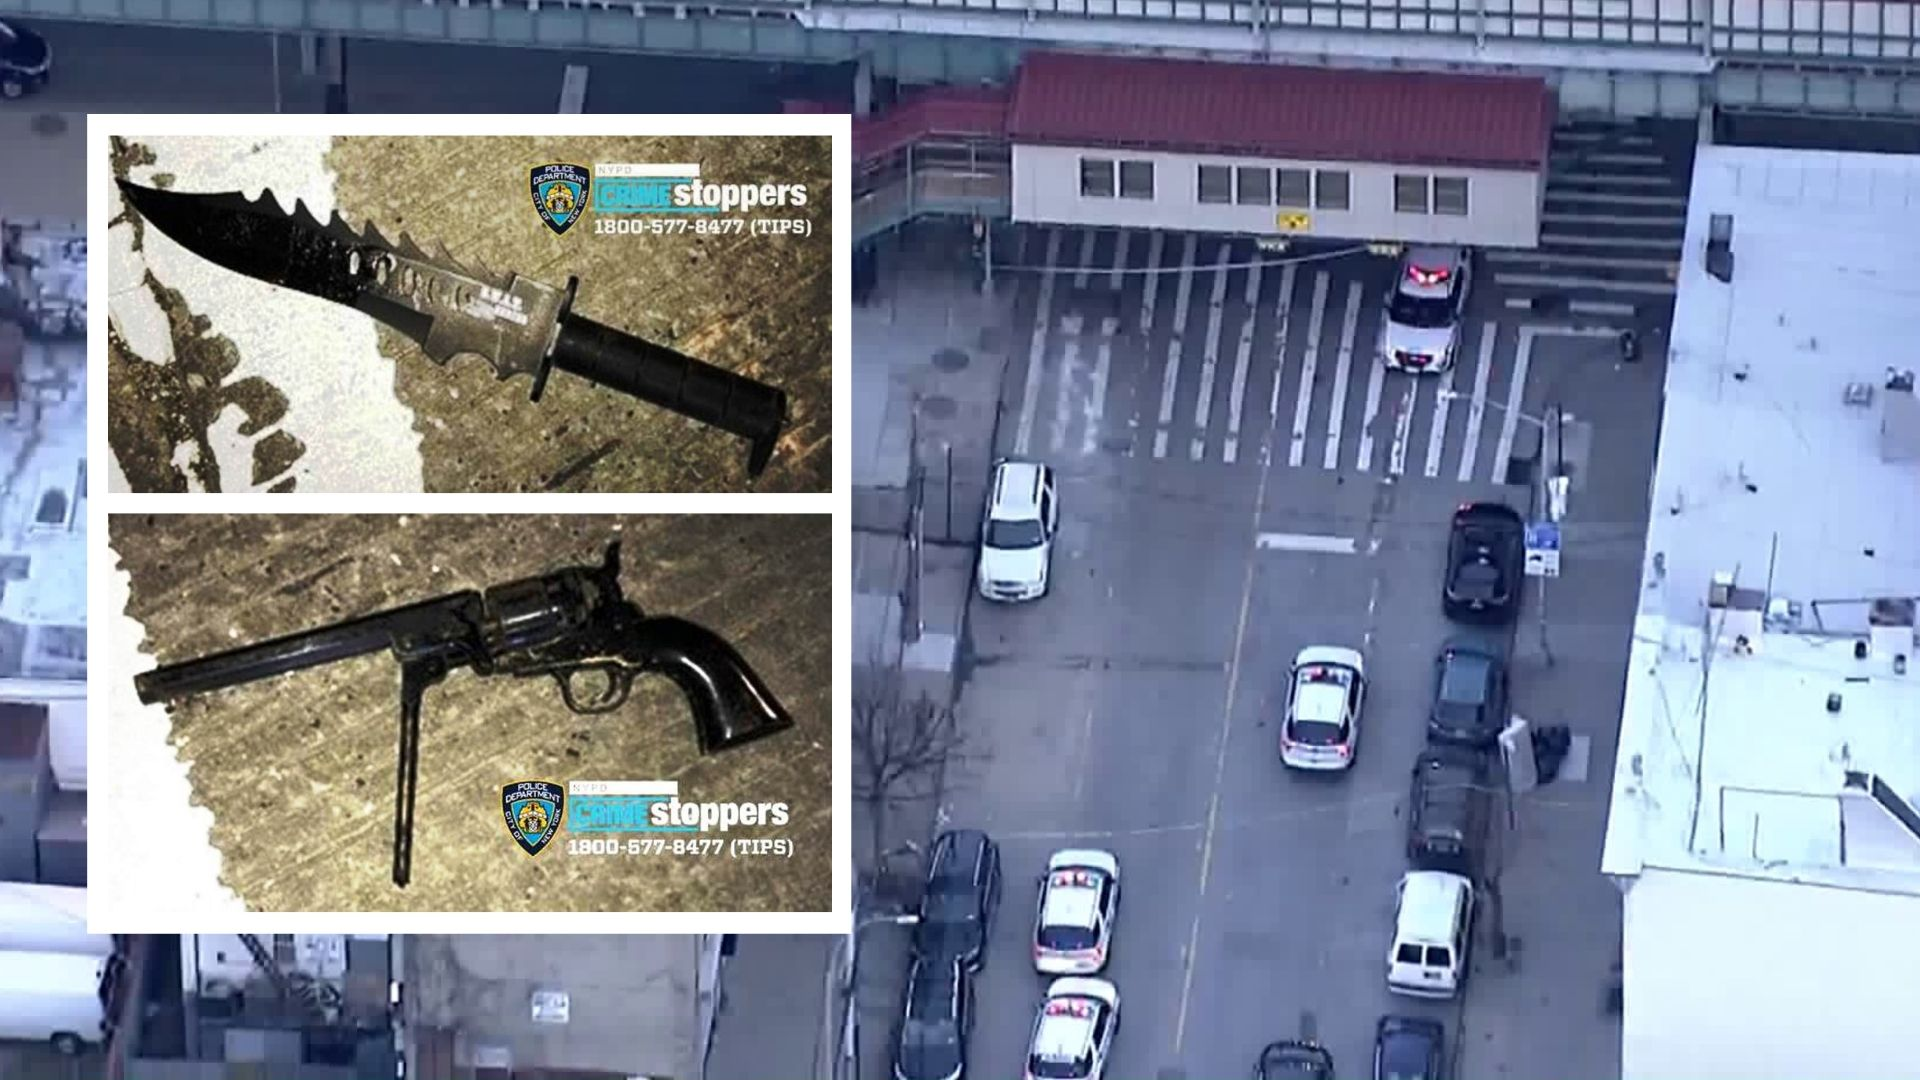 Armed man shot by police officers in Bronx